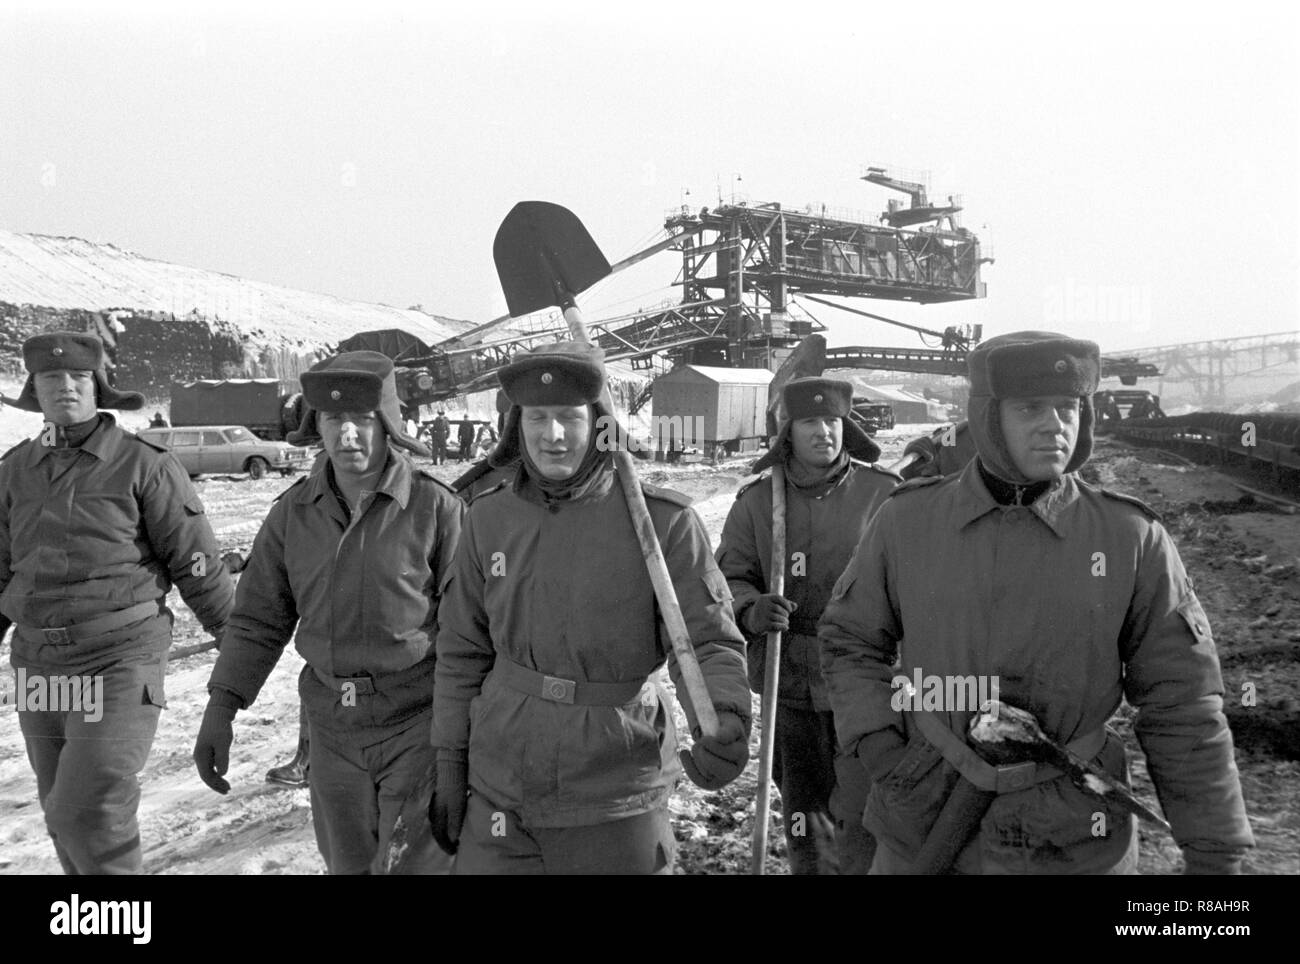 Use of soldiers in the Welzow-Sud open pit in the former district of Cottbus (Brandenburg) on 02.01.1979. The time around the turn of the year 1978/1979 went down in the history of the GDR as 'disaster winter'. Within a few hours, temperatures dropped from mild five to minus 20 degrees, with heavy snowfall disrupting traffic and large parts of the economy. The frost stopped the conveyor belts and let the coal freeze in the wagons. Photo: Erich Schutt/dpa central image/ZB - NO PICTURE USE - | usage worldwide - Stock Image